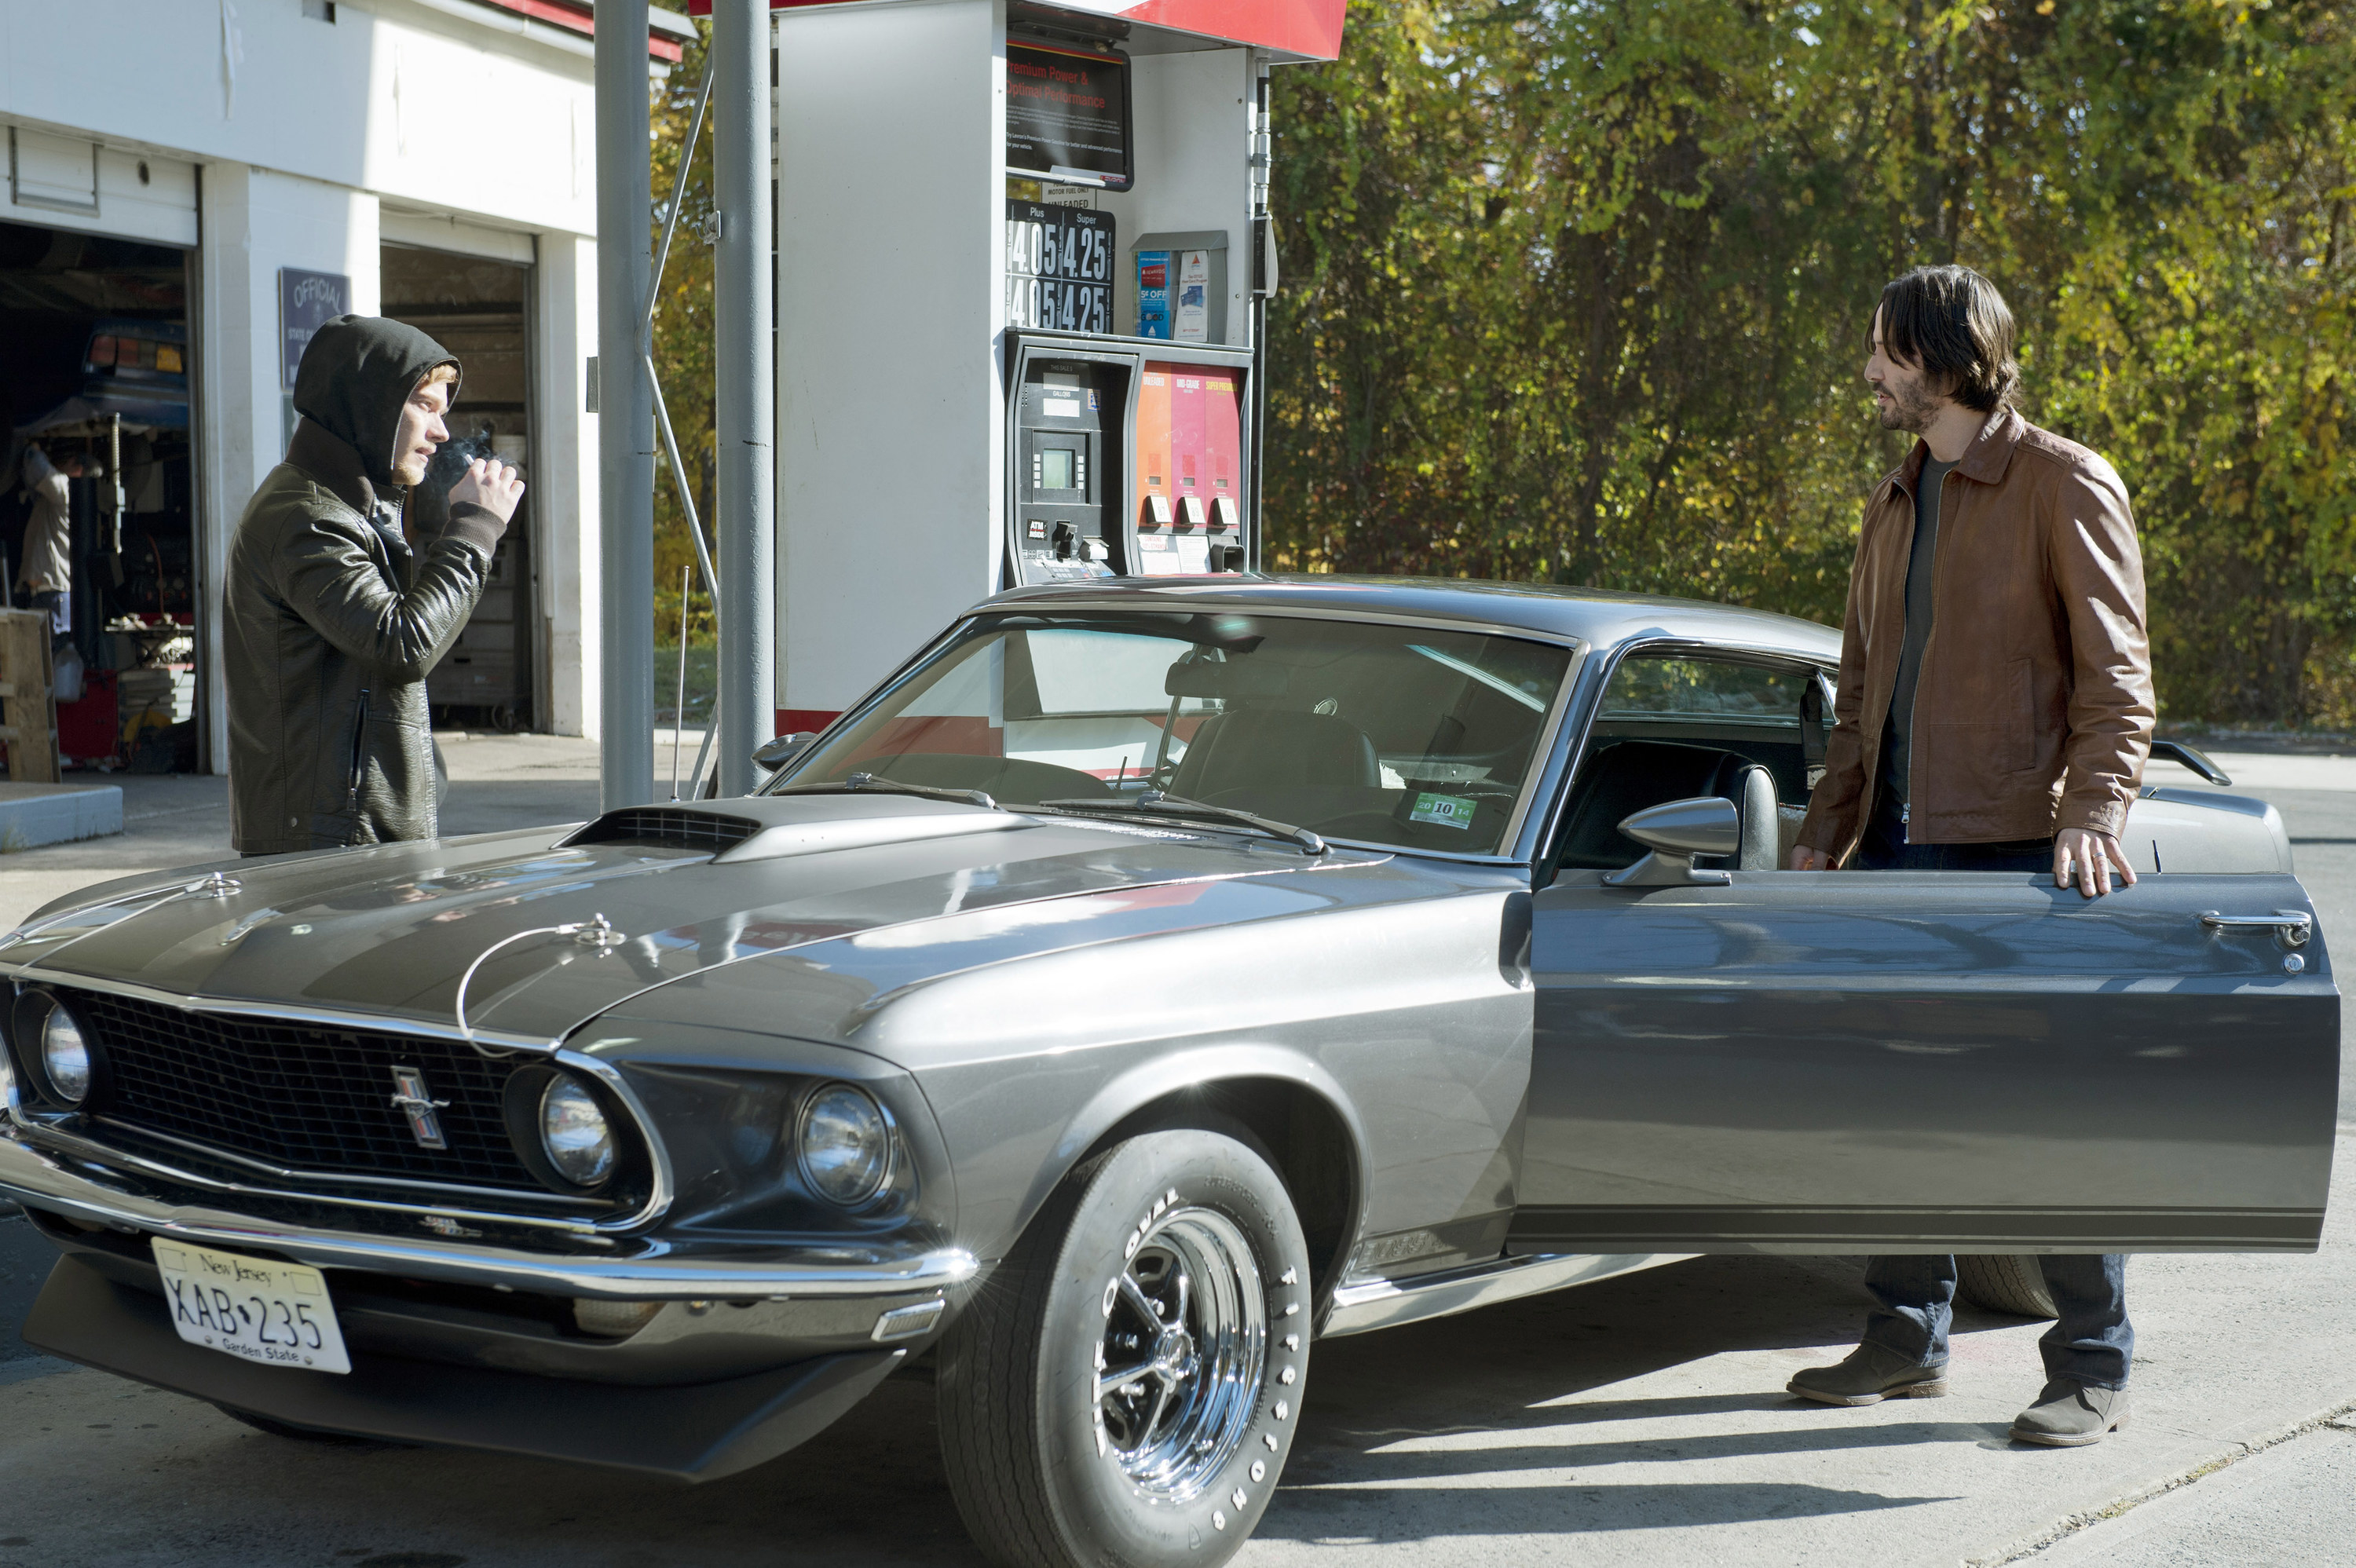 John Wick stands outside his car at the gas station as Iosef threatens him